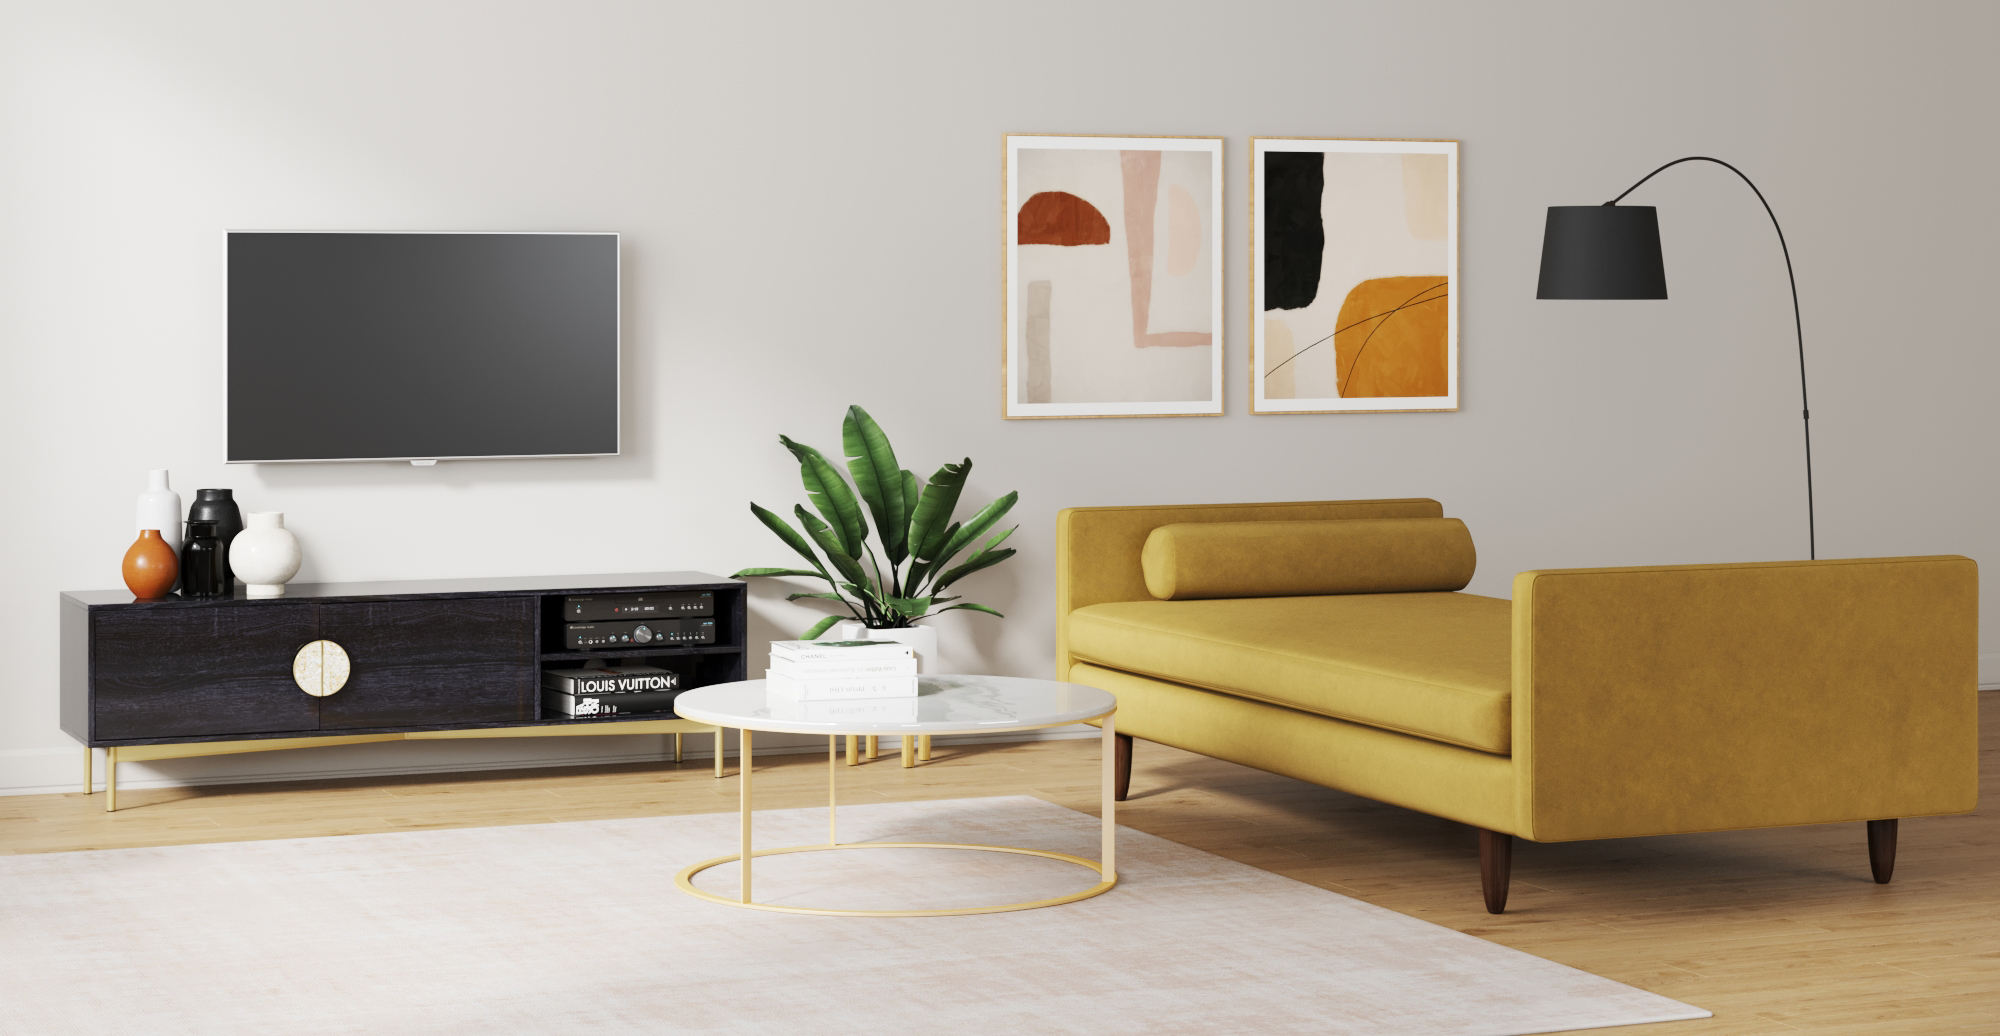 Brosa Monroe Daybed styled in modern contemporary living room